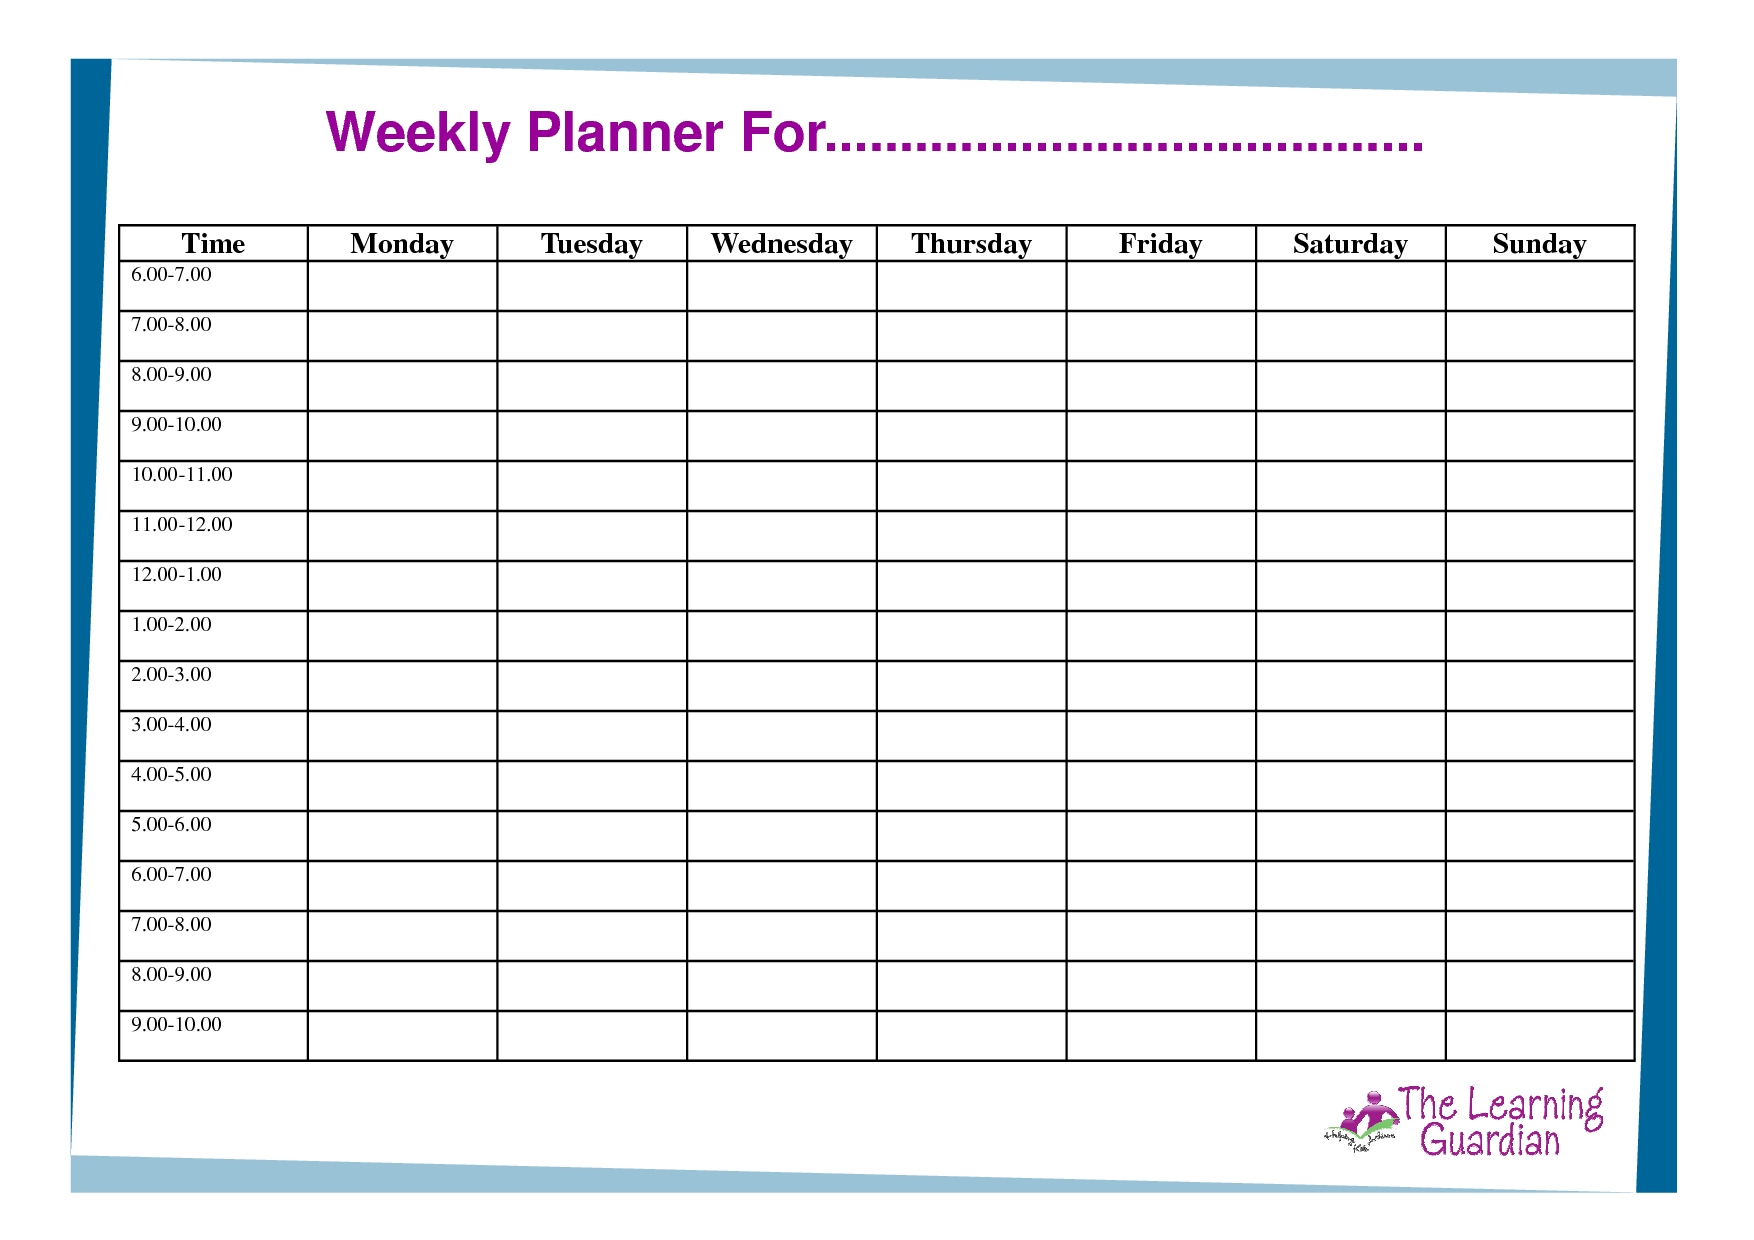 Free Printable Weekly Calendar Templates | Weekly Planner For Time throughout Printable Weekly Planner Calendar Template